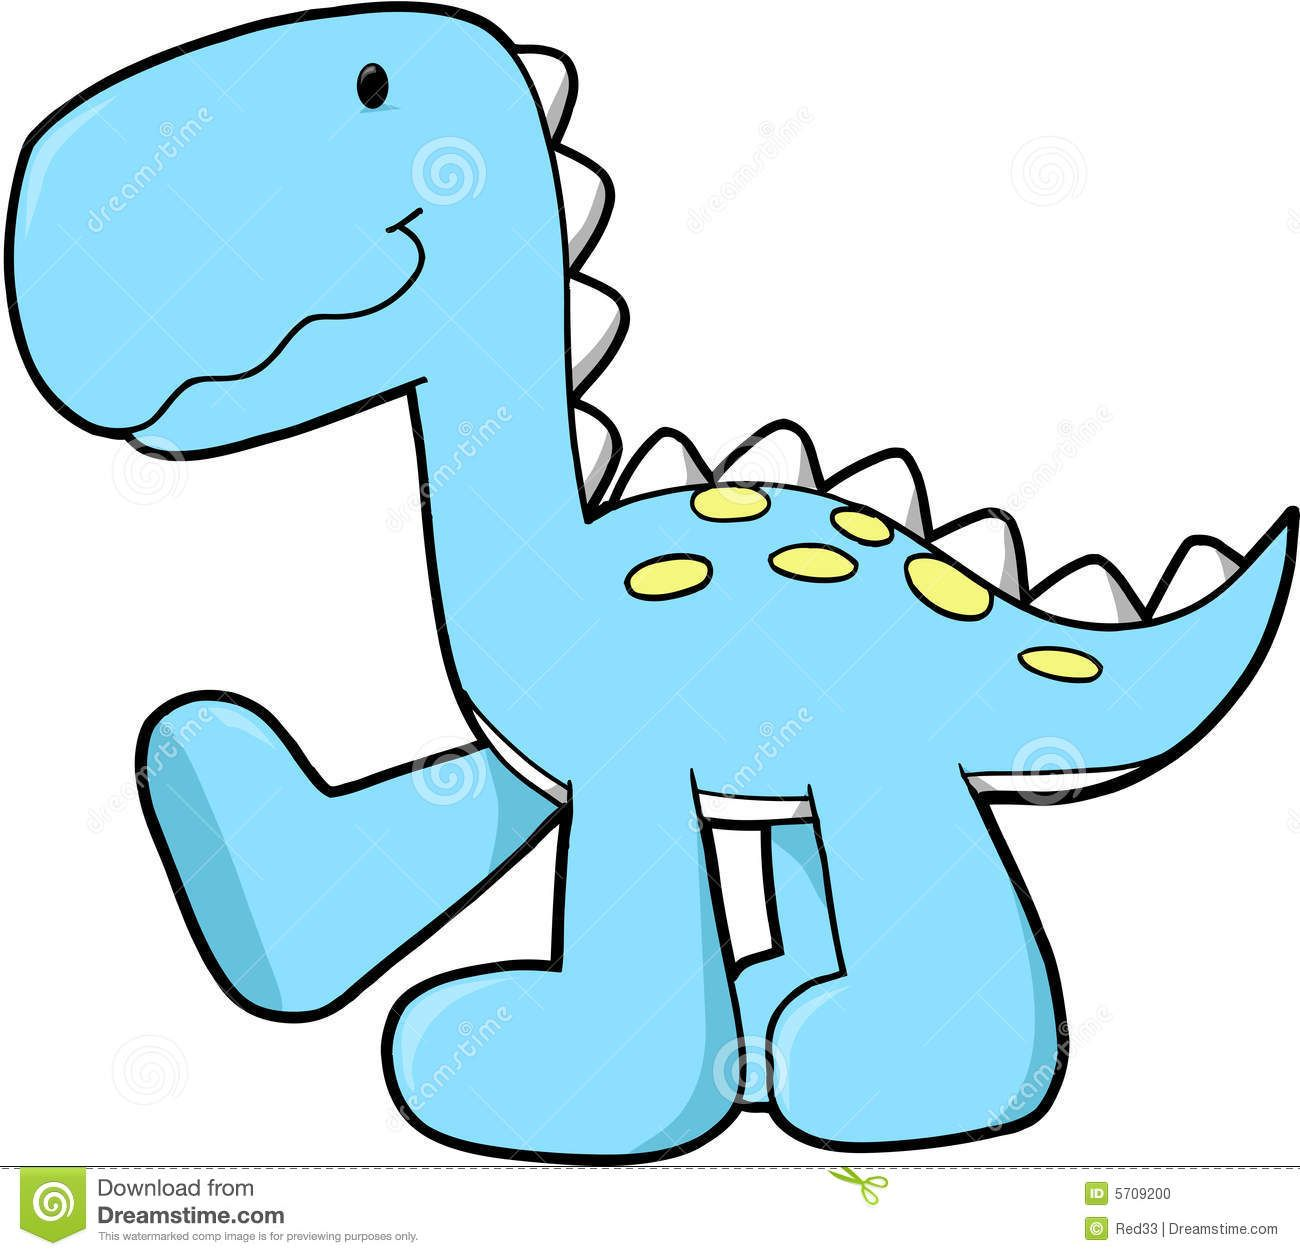 hight resolution of 1300x1256 cute dinosaur free clipart toddler homeschool projects